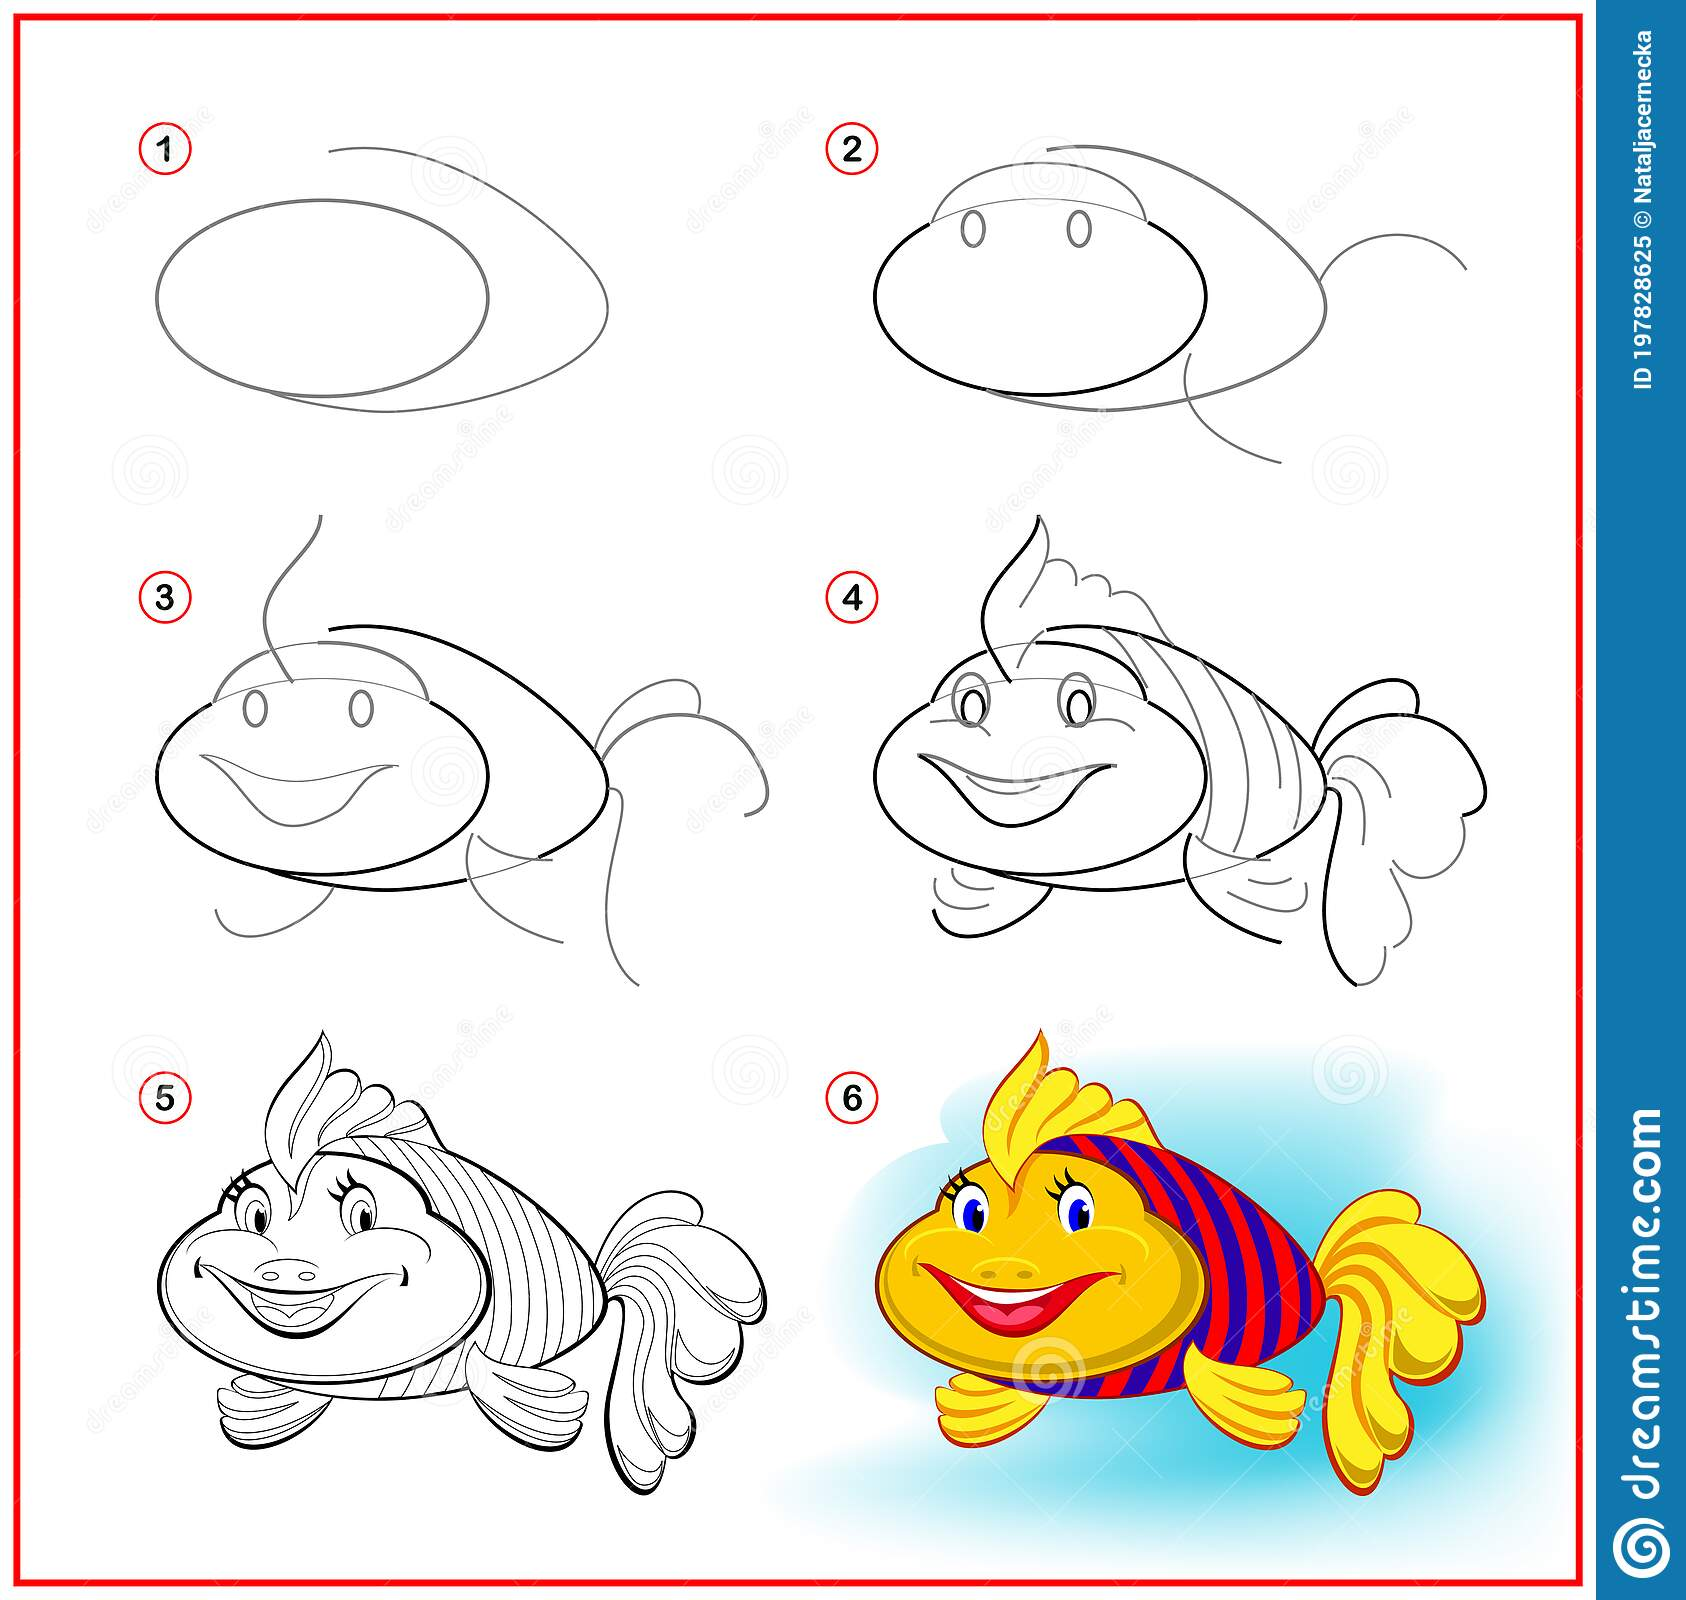 How To Draw Cute Toy Fish Educational Page For Children